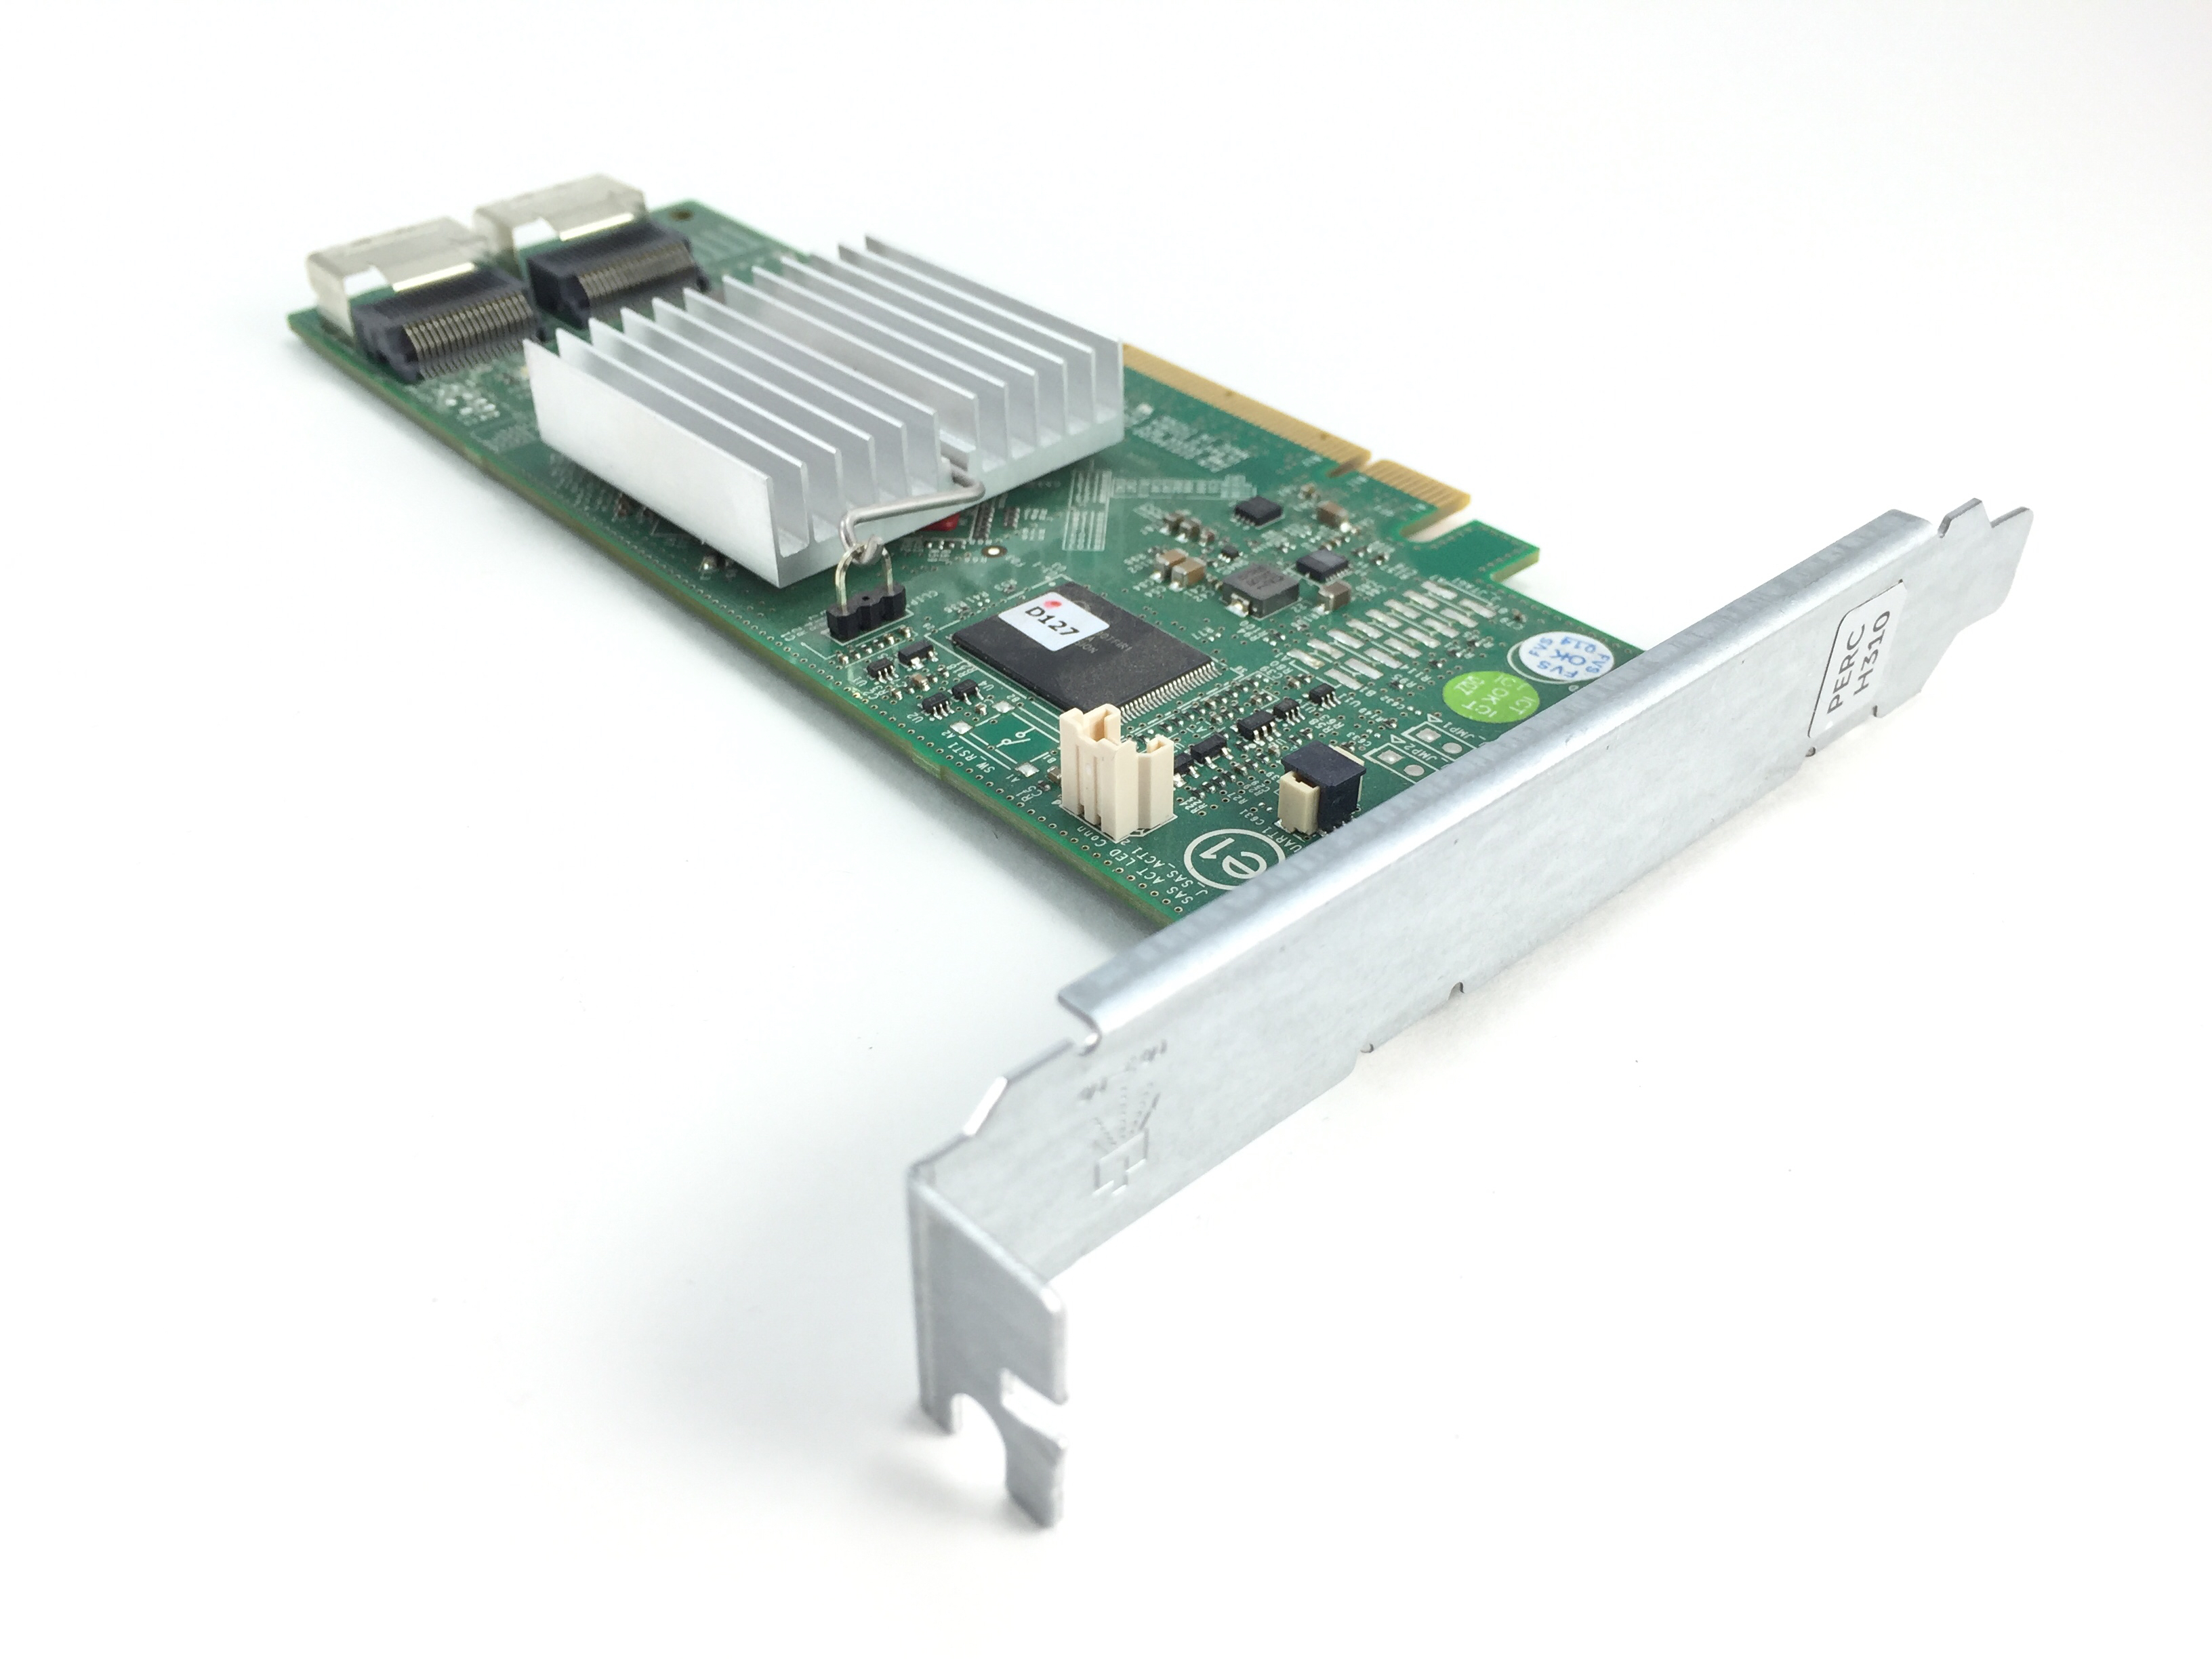 DELL POWEREDGE H310 8 PORT 6GBPS SAS/SATA RAID CONTROLLER PCI-E (03P0R3)